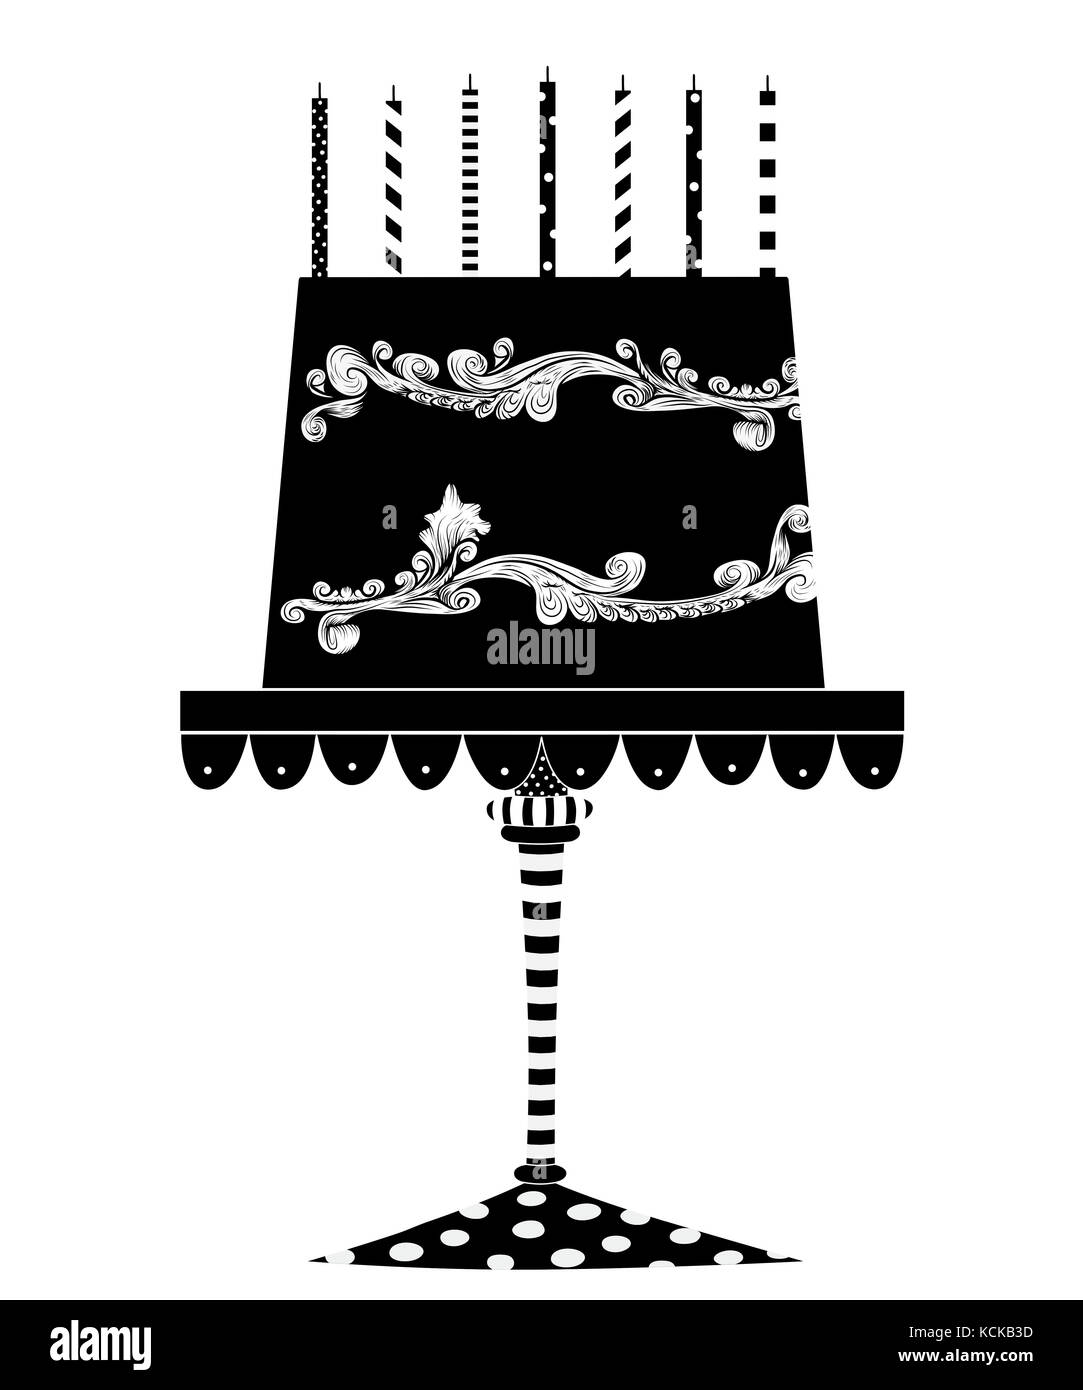 Whimsical Black And White Illustration Of A Festive Birthday Cake With Candles Isolated On